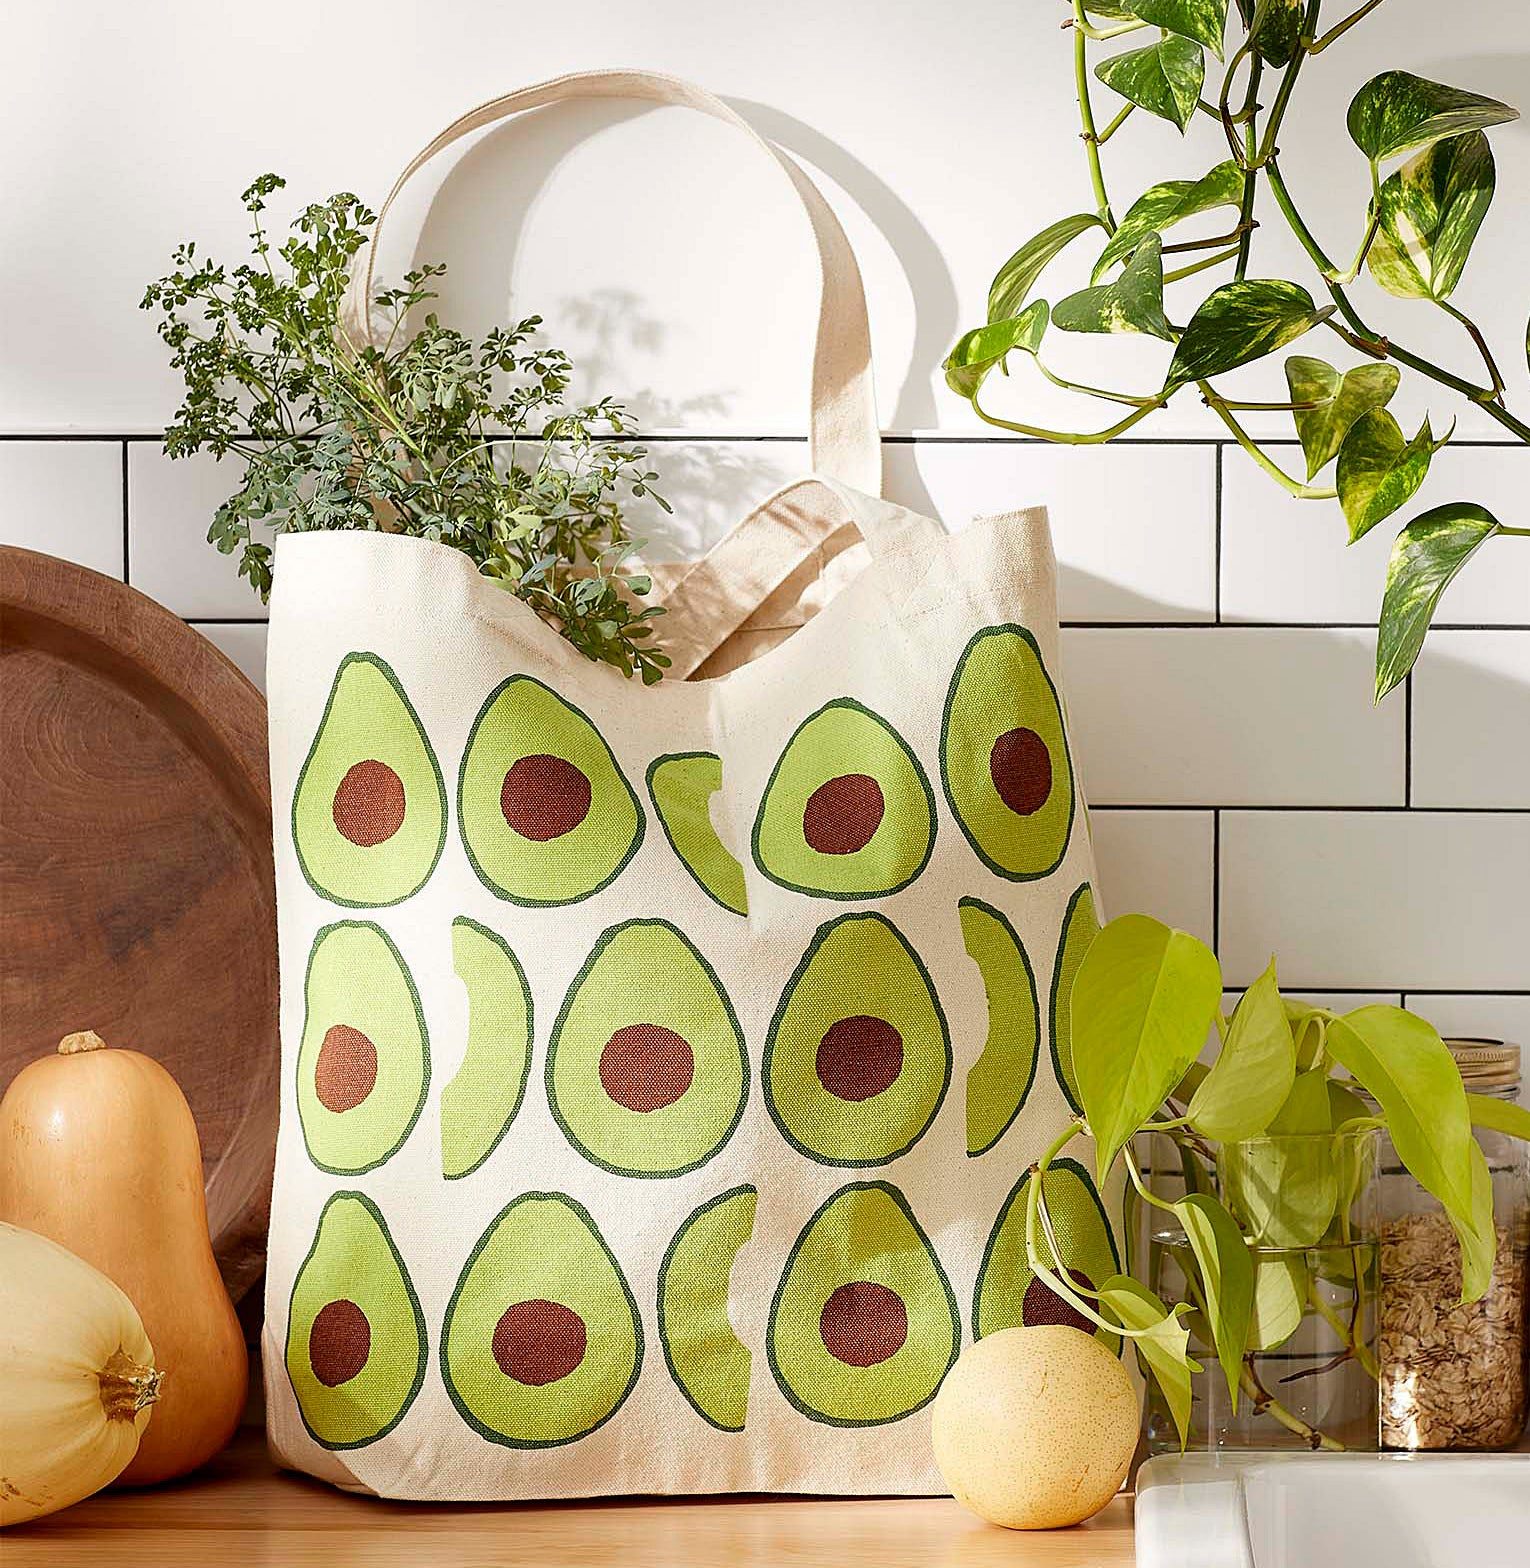 The avocado tote on a kitchen counter